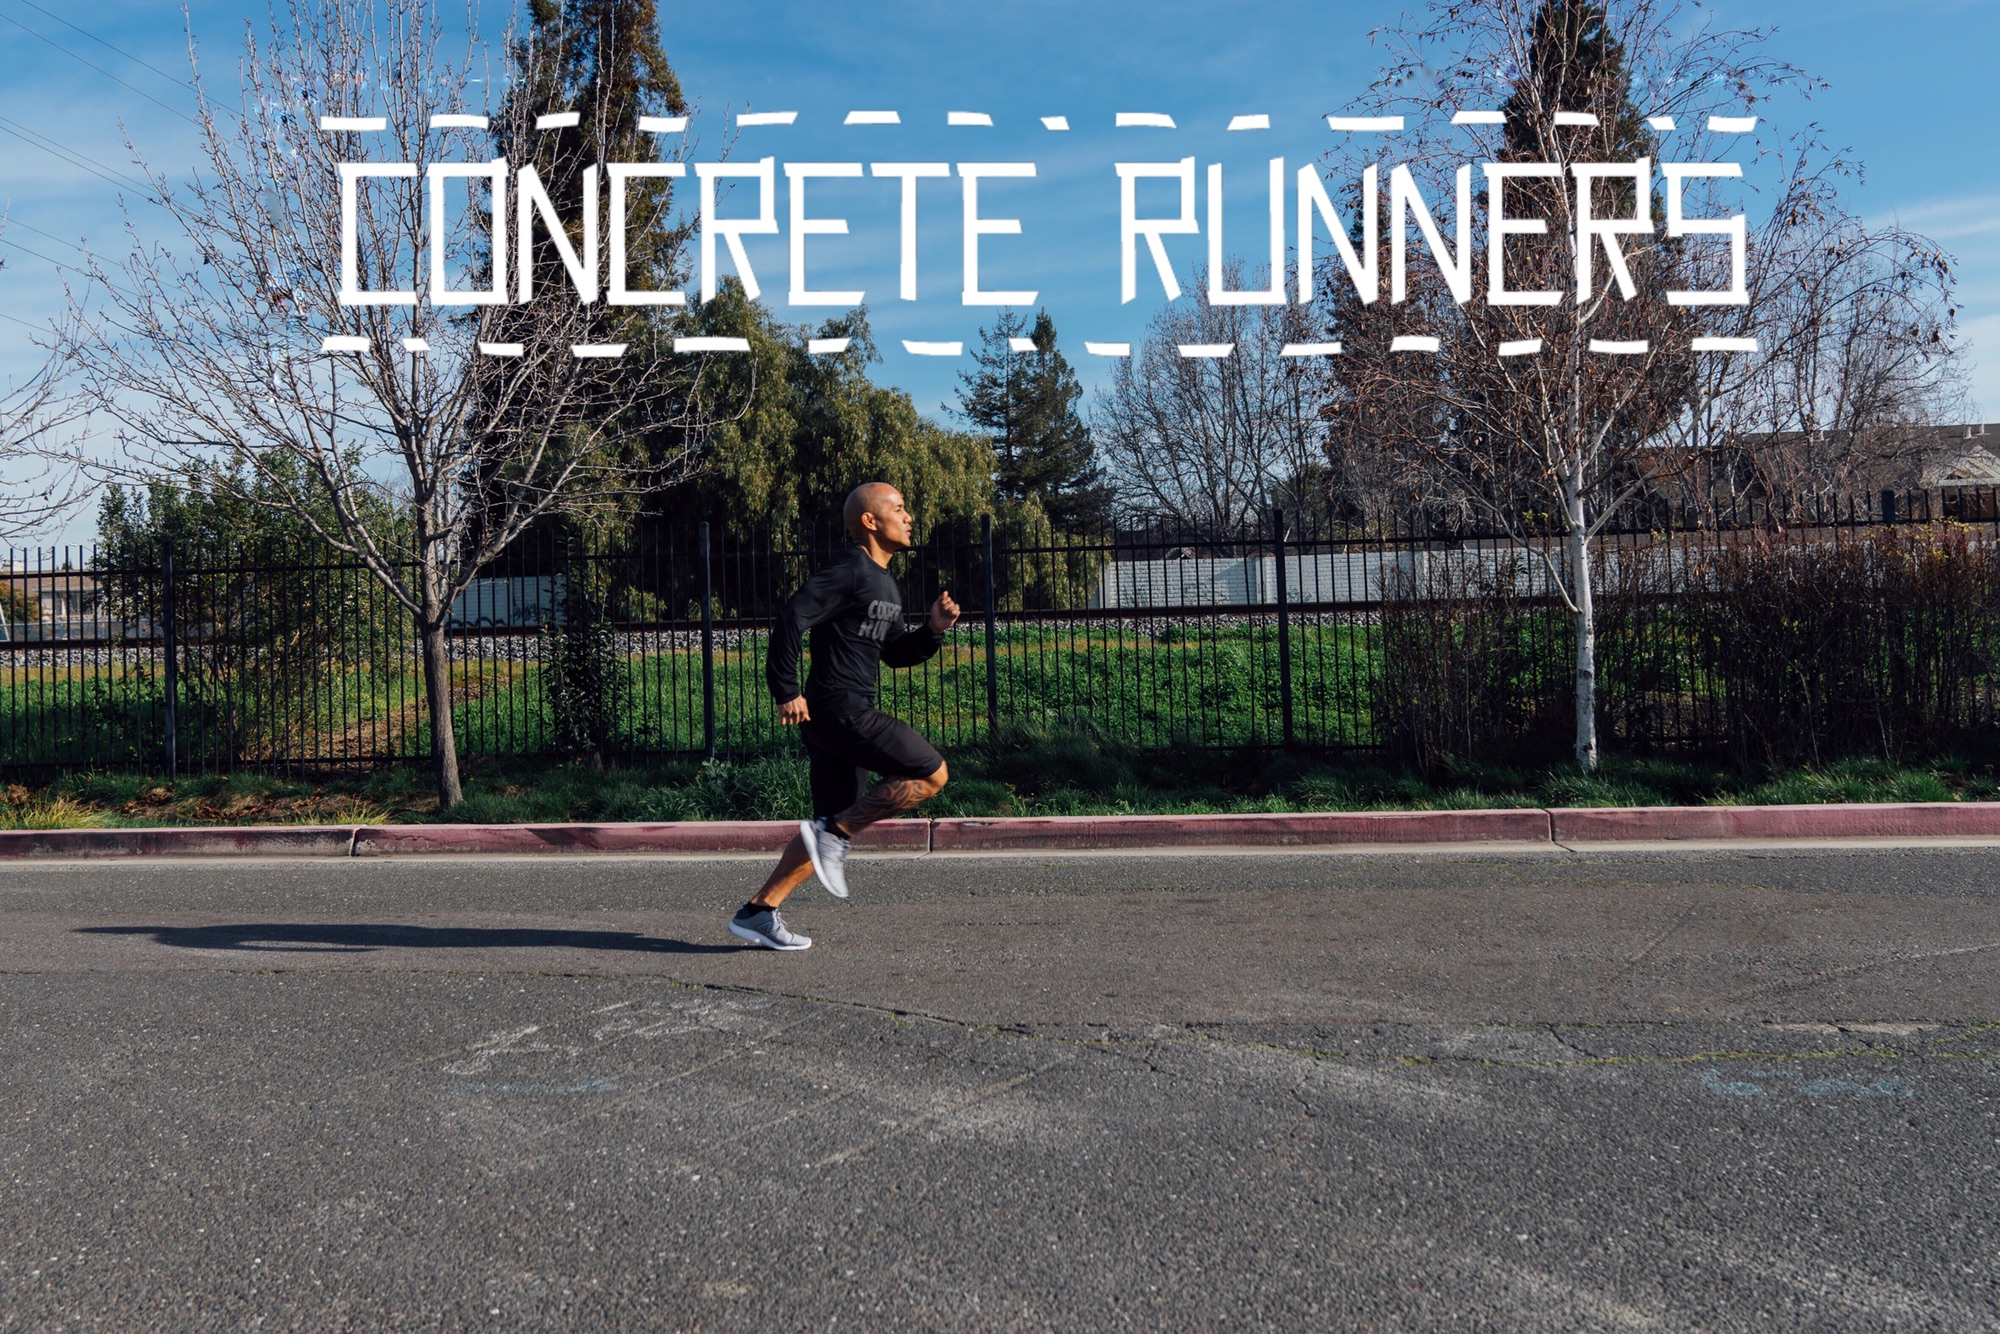 Meet Abel @sfogclothing he will be 1 of 22 competing in a 344 mile relay from LA to Vegas on March 10. Follow his journey as he hits the concrete on @thespeedproject x @concreterunners  Here's his story.  Running is a huge challenge within itself and we are tested and rewarded by every run….so why do you run?  For personal health and fitness. Or alone time. For the challenge. Or comraderie. For the outdoors and fresh air. Or exploration  I run for all these reasons, but the main reason I run is because I can. I grew up very active but I never considered myself a runner. In the recent years, running kind of fell in my lap because it was the only way I could stay active amongst family, work, and life. All I needed was a pair of running shoes (and maybe a change of clothes) and I was good-to-go. Even though it was out of convenience that I started running, I now reap the rewards of keeping active, having me-time, being able to see the world from a humbling perspective, and doing epic sh!t with the awe-inspiring running community.  But what makes running meaningful is that I am able to run for more than just myself. Having a daughter who suffers from a muscle disorder makes you appreciate the little things in life. She has been a fighter and illuminates a positive spirit even through all she goes through. She is a true example of hope…and my hero. And I now run to bring sMILEs to my MDA (My Daughter Ava), raise awareness for the MDA (Muscular Dystrophy Association), and motivate and inspire others along the way. #concreterunners #thespeedproject